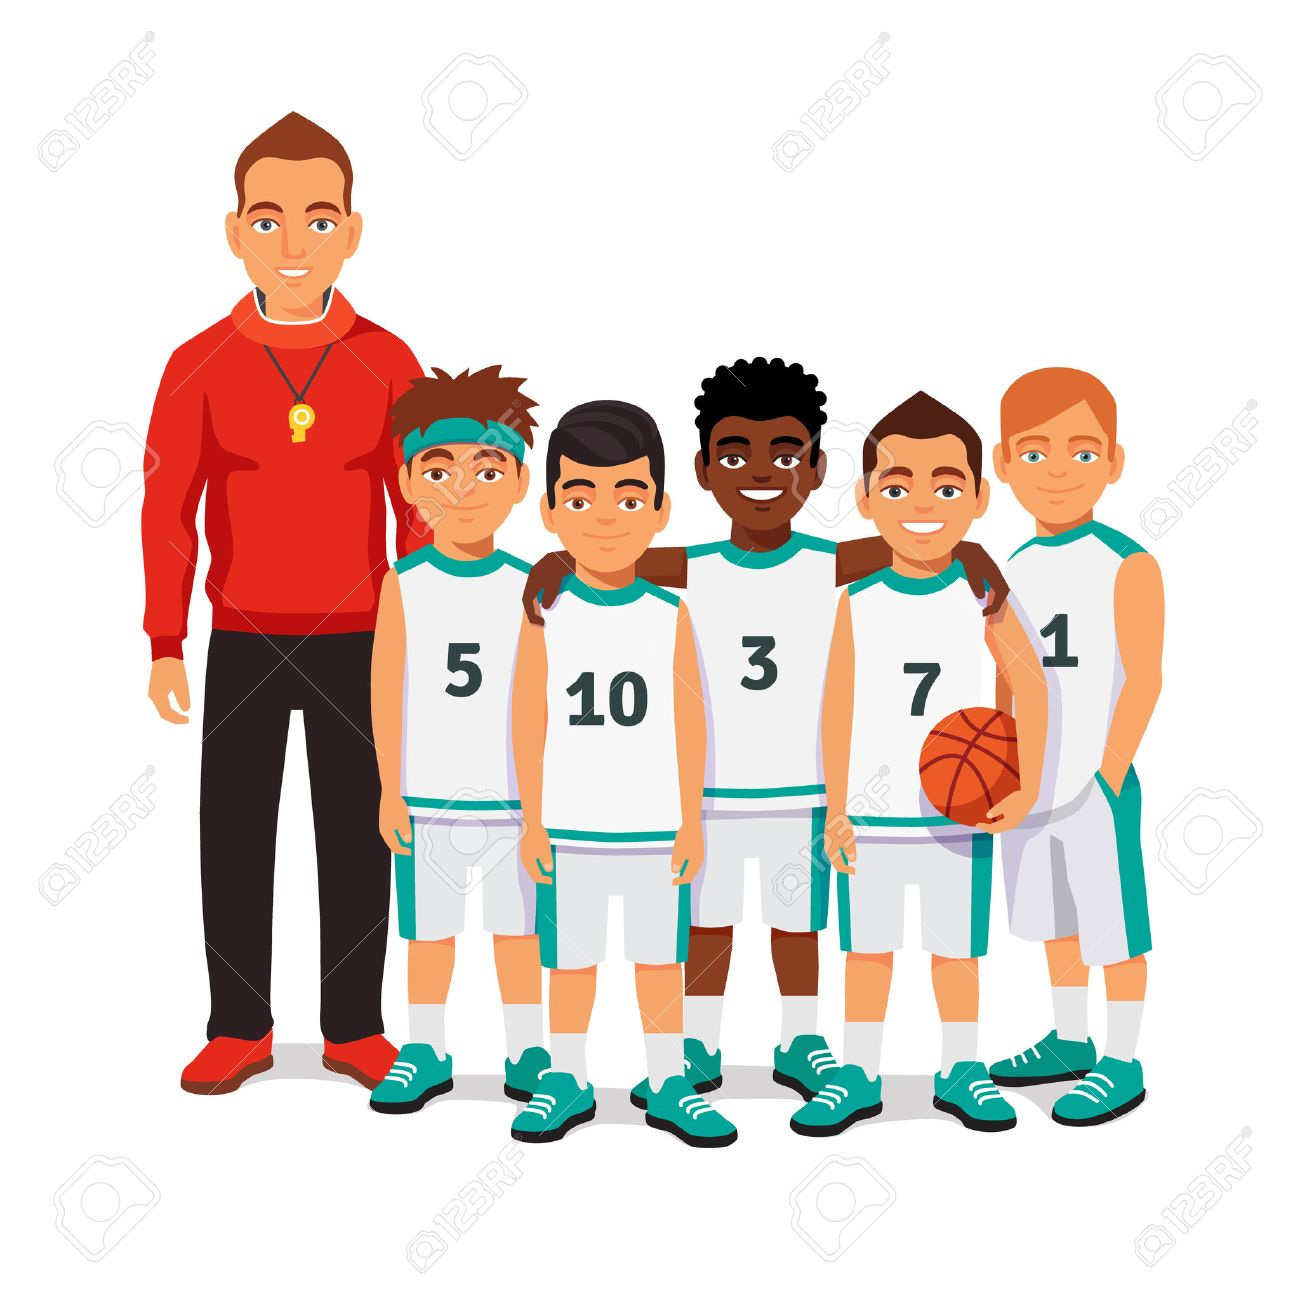 School boys basketball team standing with their coach. Flat style vector illustration isolated on white background. - 53122281